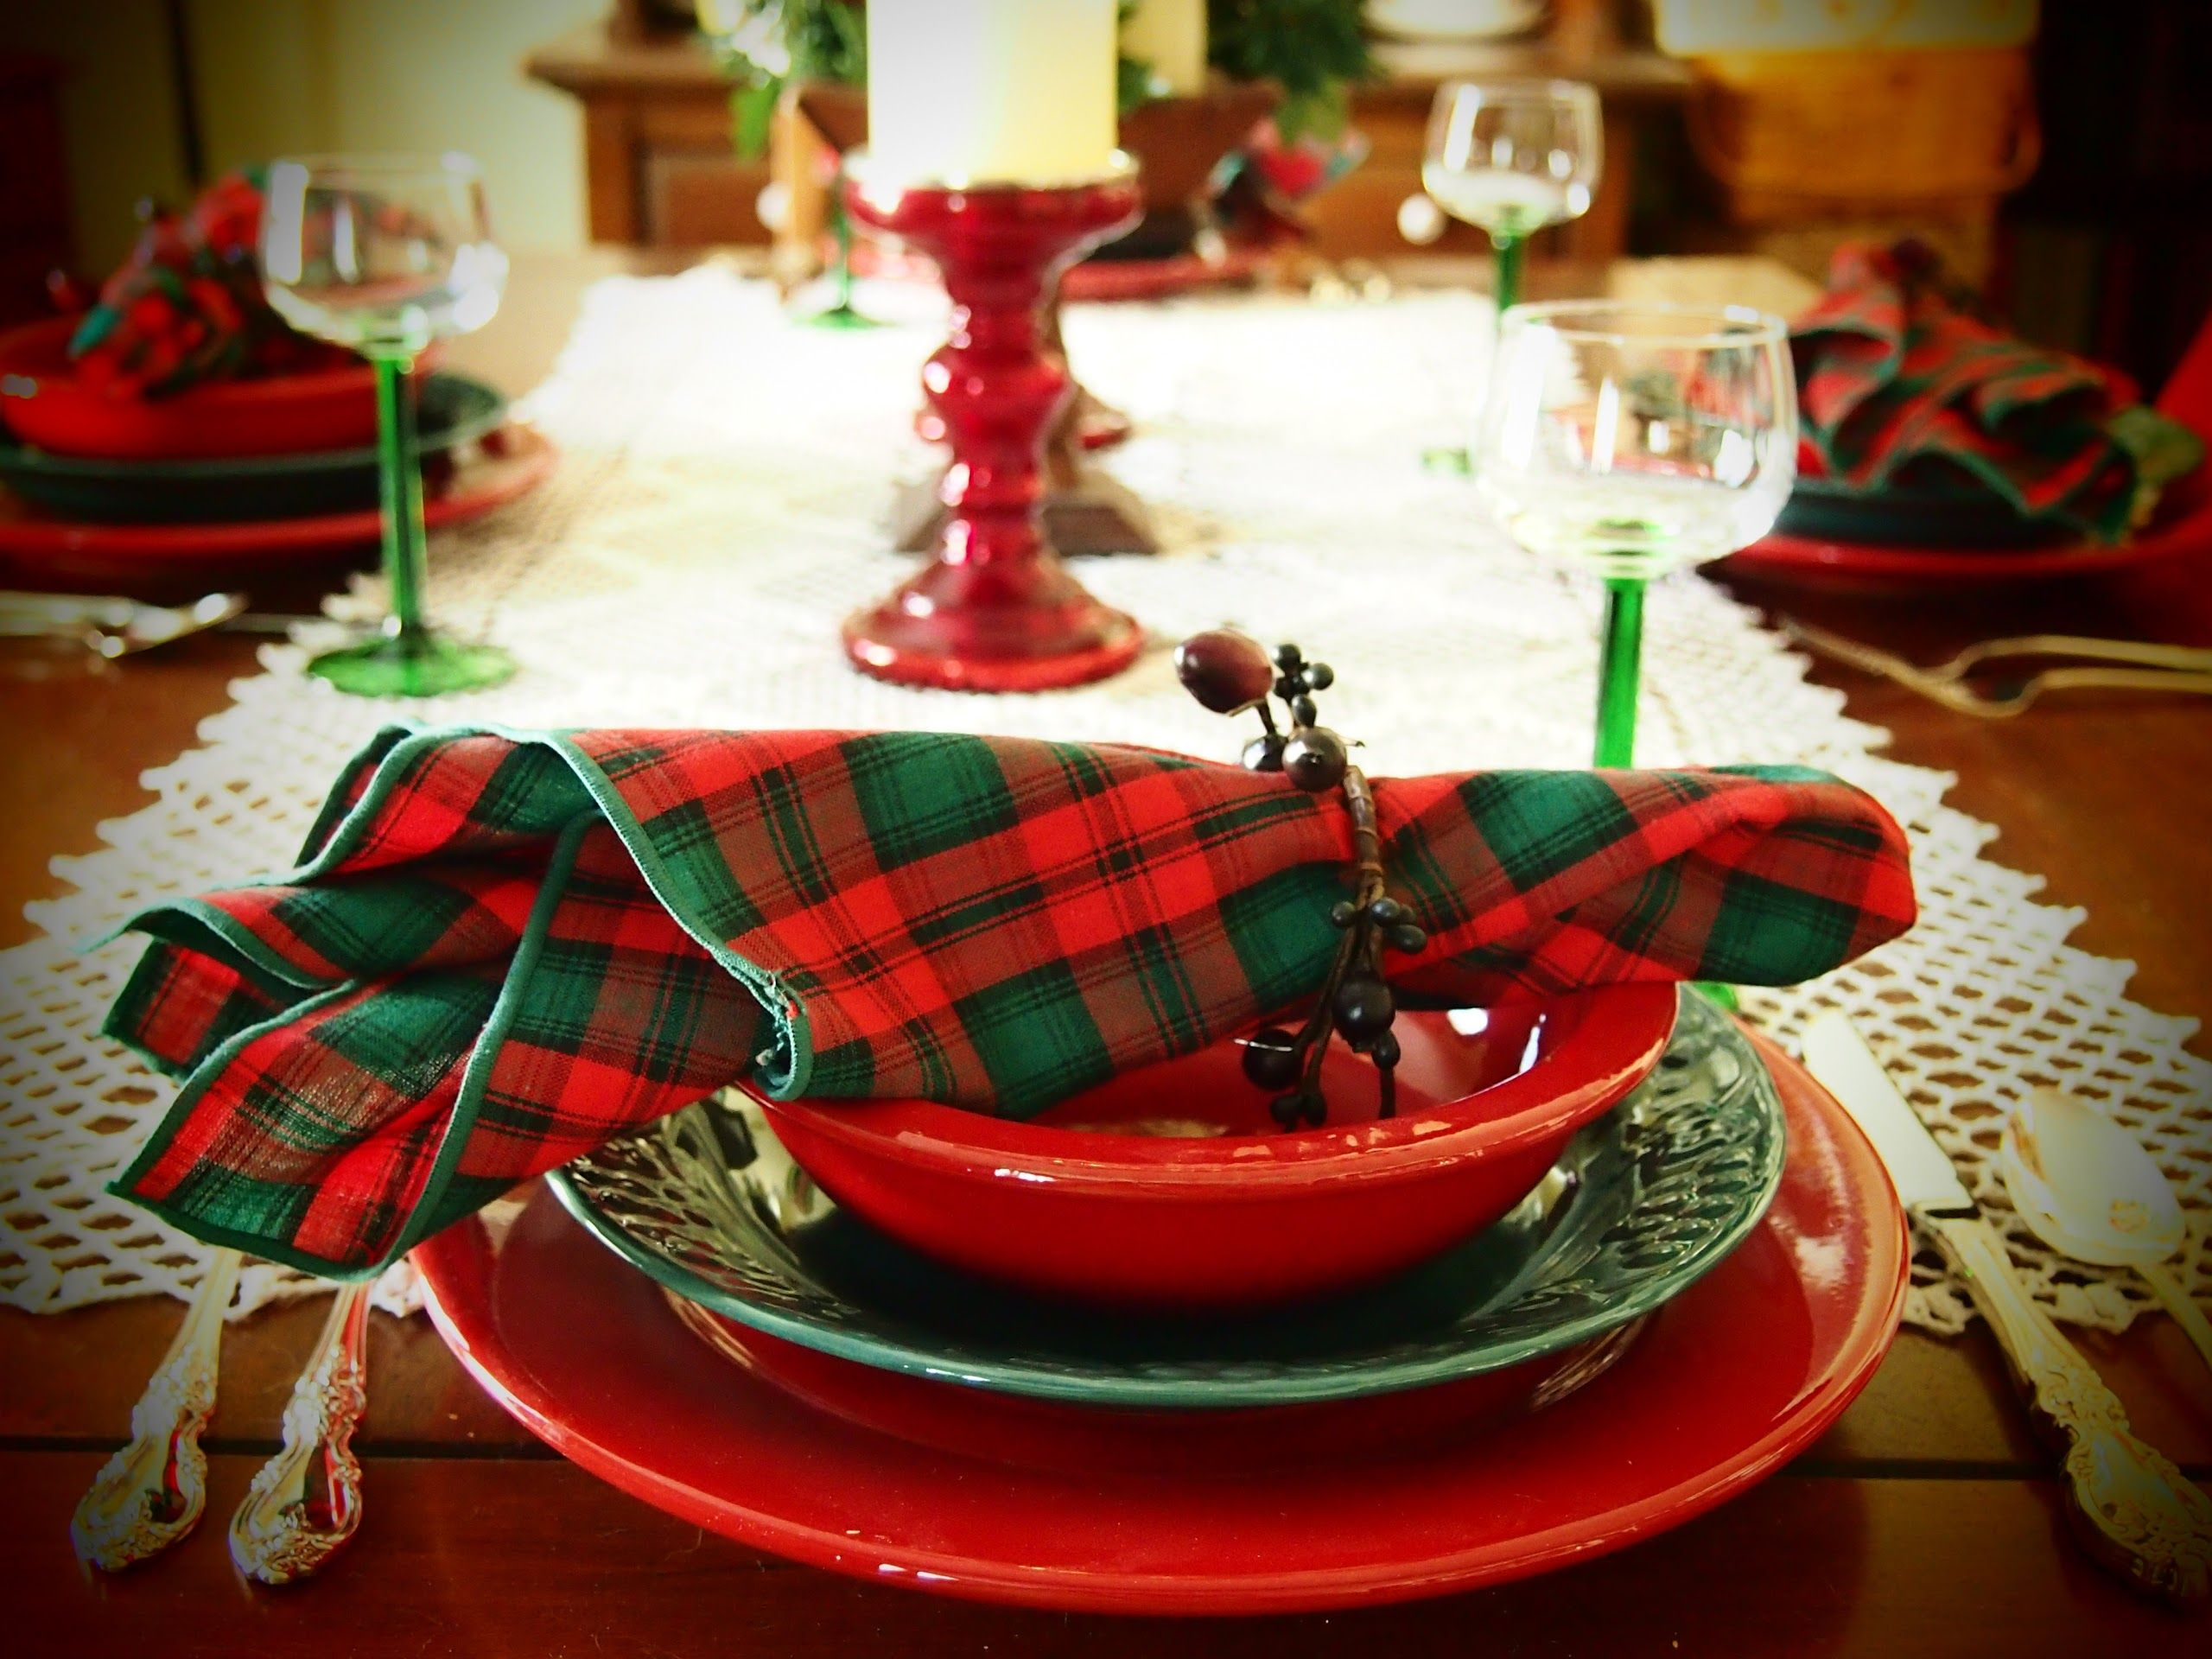 Red Green Christmas Dinner Table Decorations Focusing On Red Napkins Tied Wit Christmas Decorations Dinner Table Christmas Table Decorations Dinner Table Decor